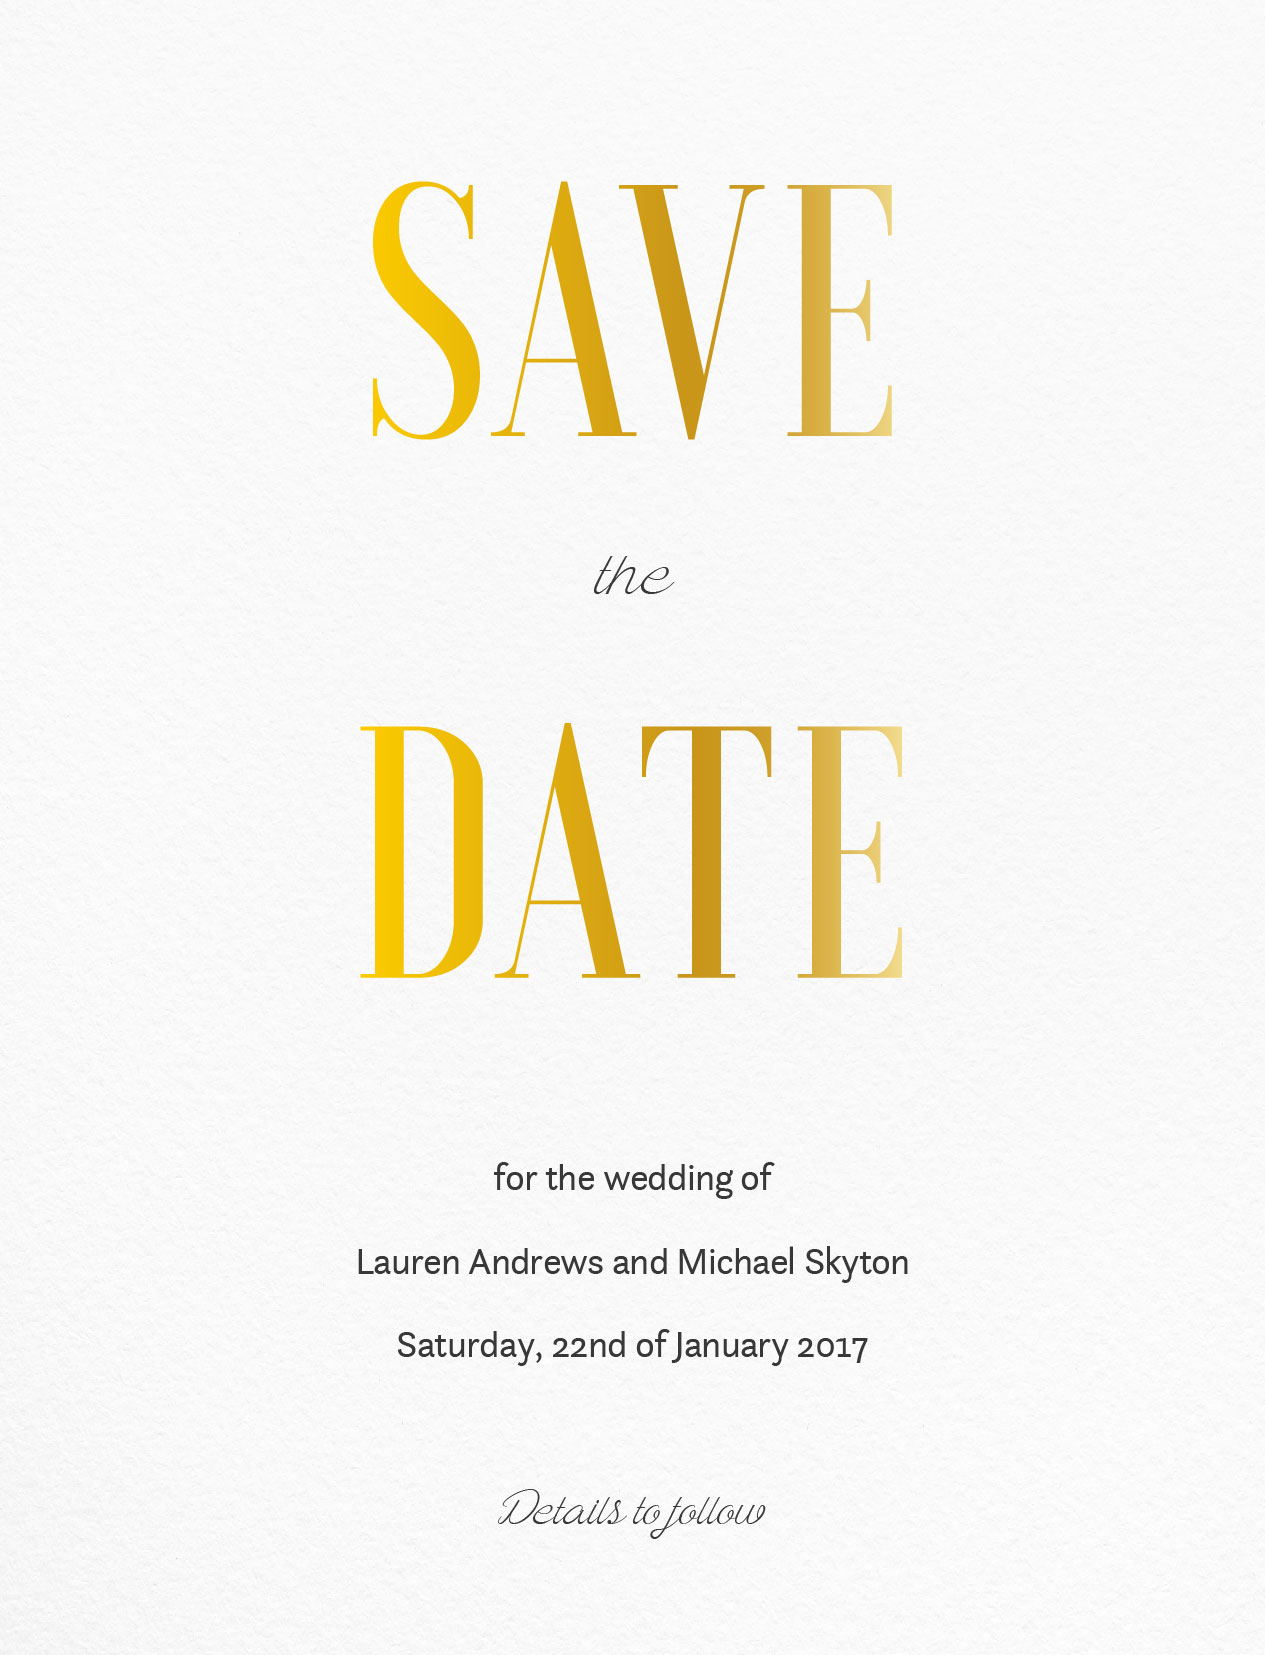 Paper Plane - Save The Date